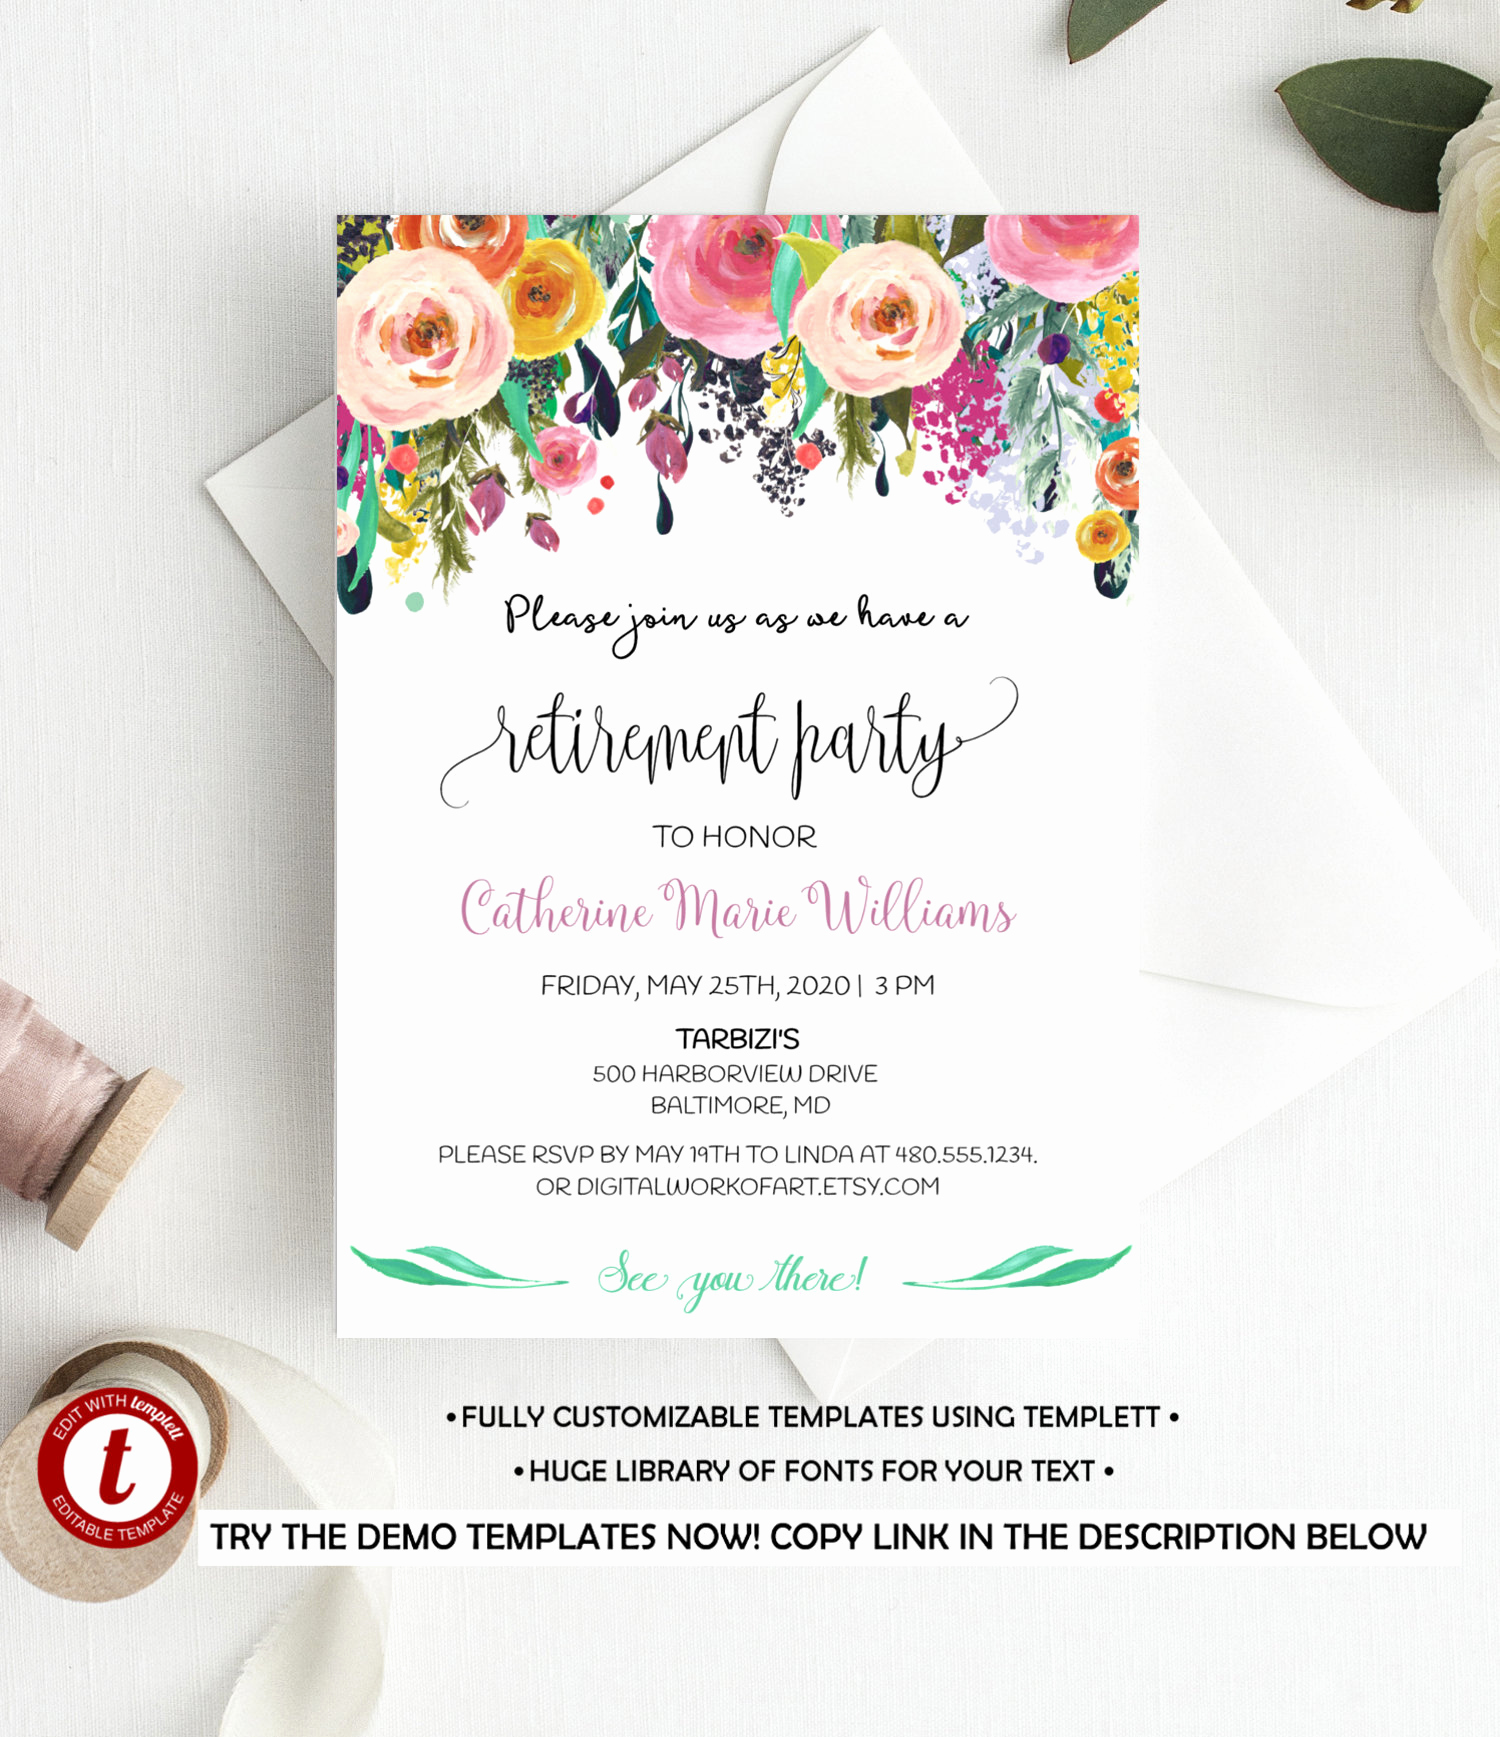 Retirement Party Invitation Template Fresh Fully Editable Retirement Party Invitation Template